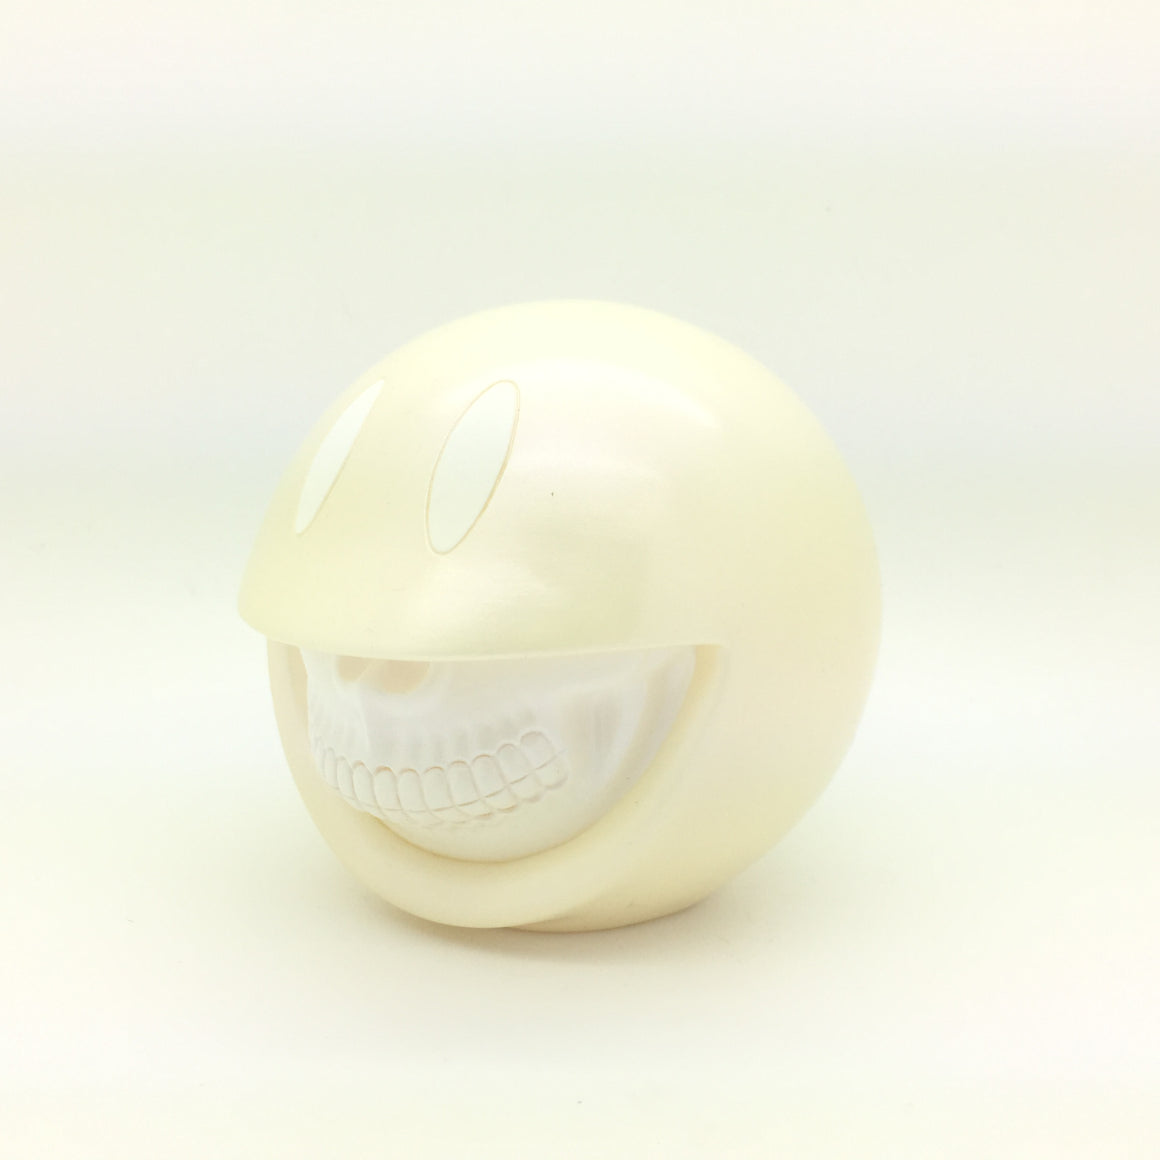 Smiley Grin Pearl - White Grin Edition by Ron English x Made By Monsters x JPS gallery